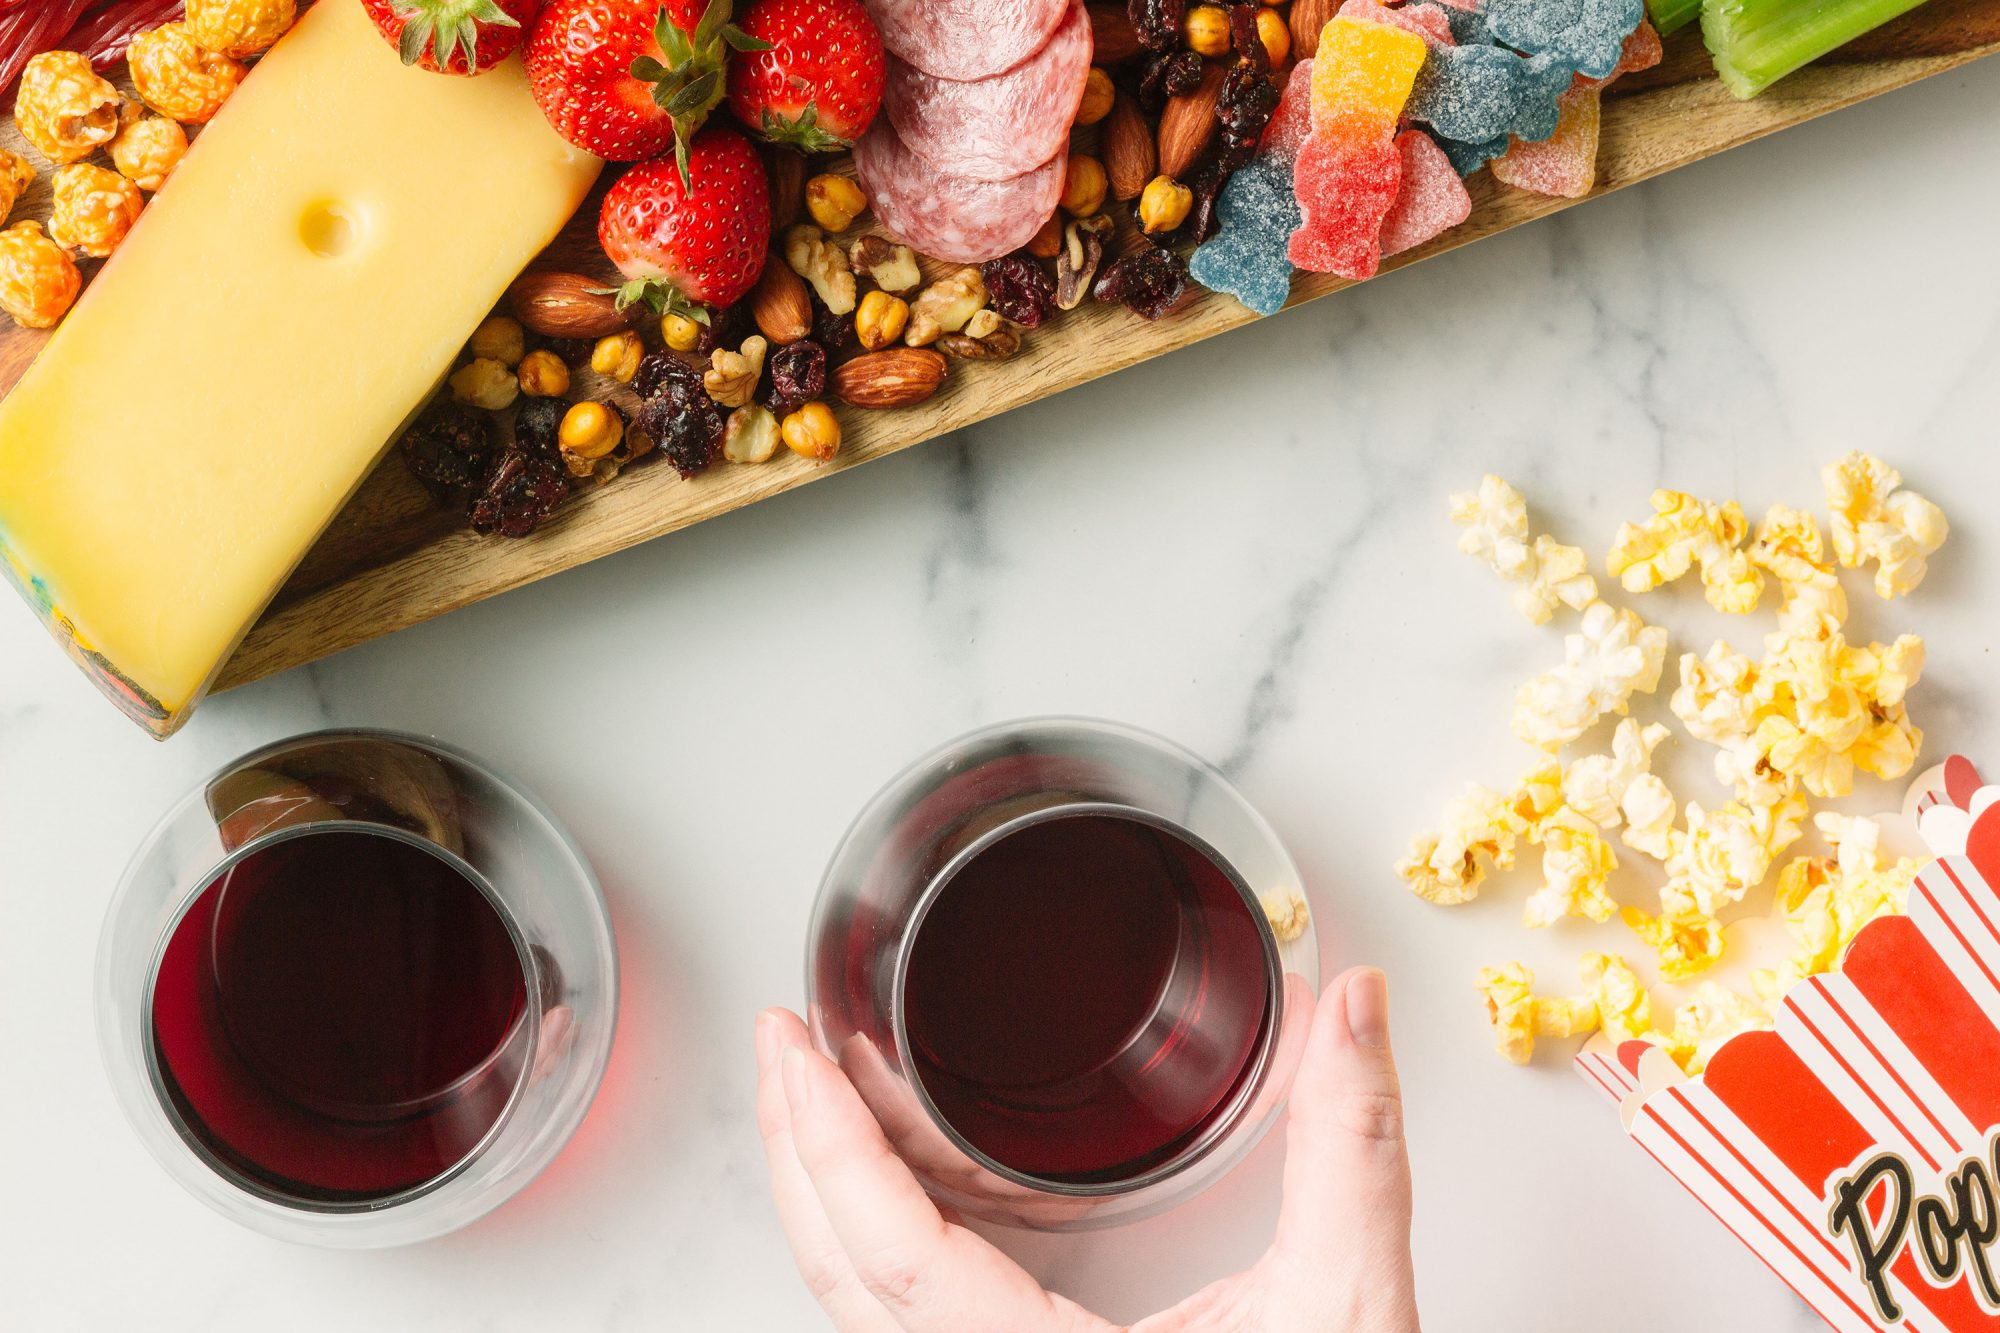 grown-up snacking board with popcorn and wine